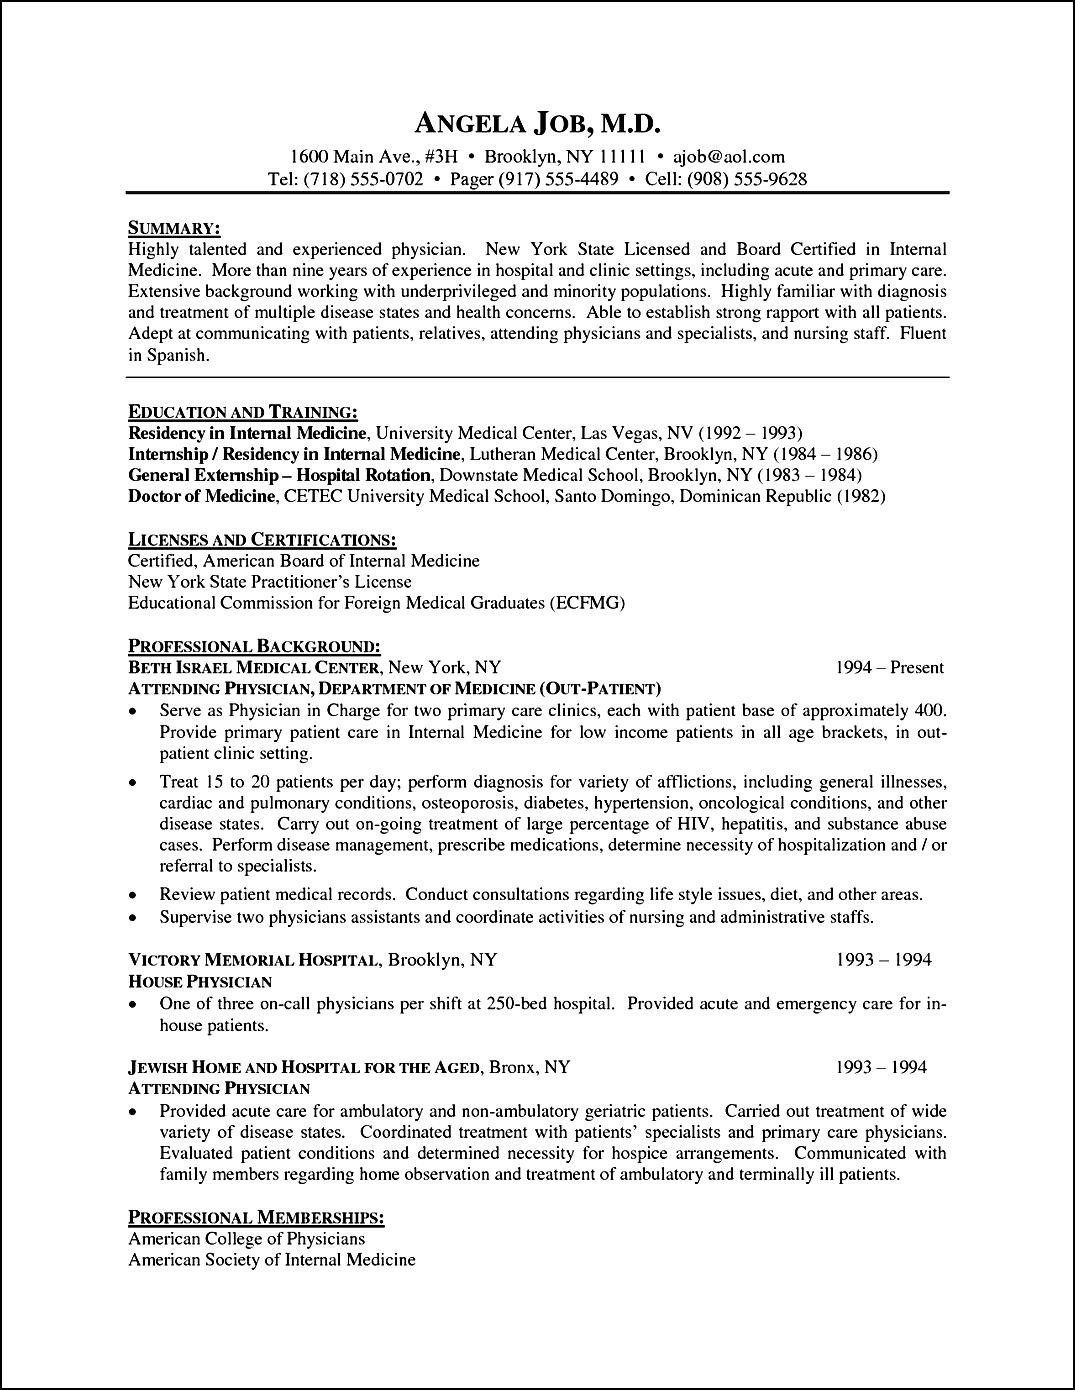 Curriculum-Vitae-Format-Doctor Sample Curriculum Vitae For Social Workers on for accountant partner, latest format, cover letter, for administrative assistant, medical student, offer letter, fresh graduate, for chiropractors,